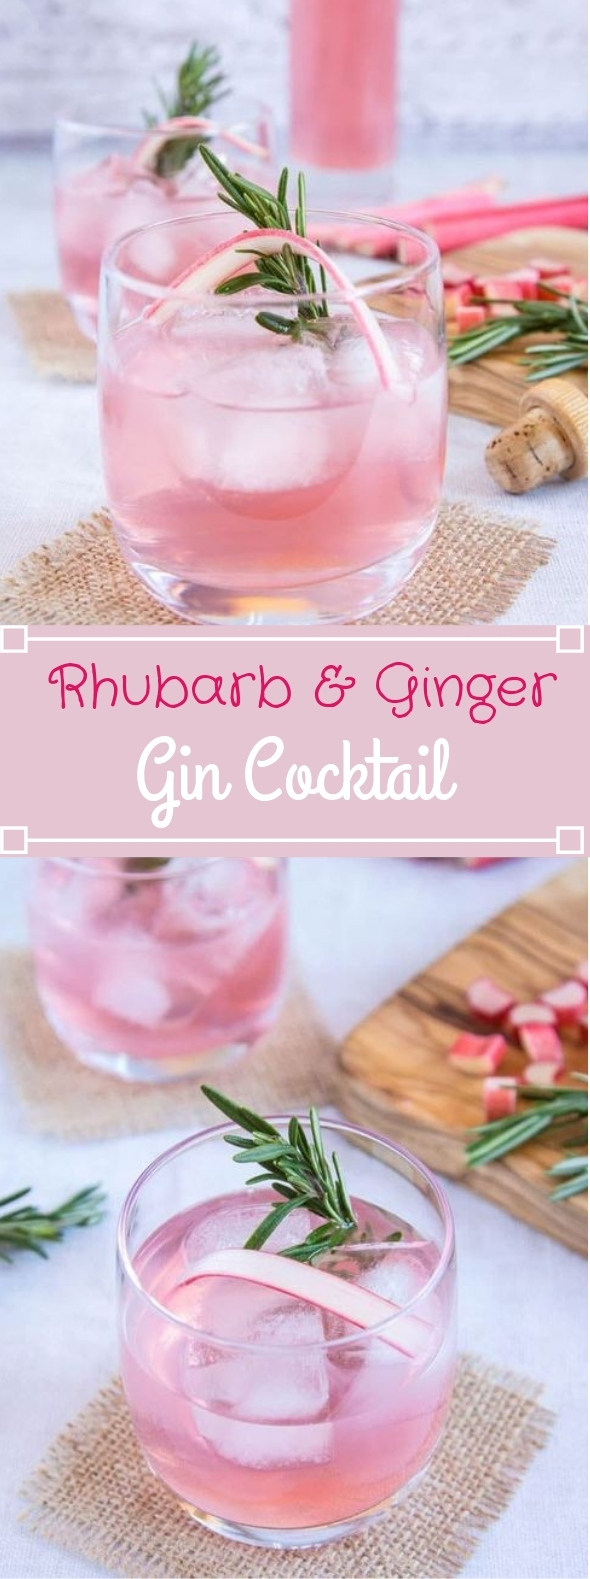 Rhubarb and Ginger Gin #drinks #cocktails